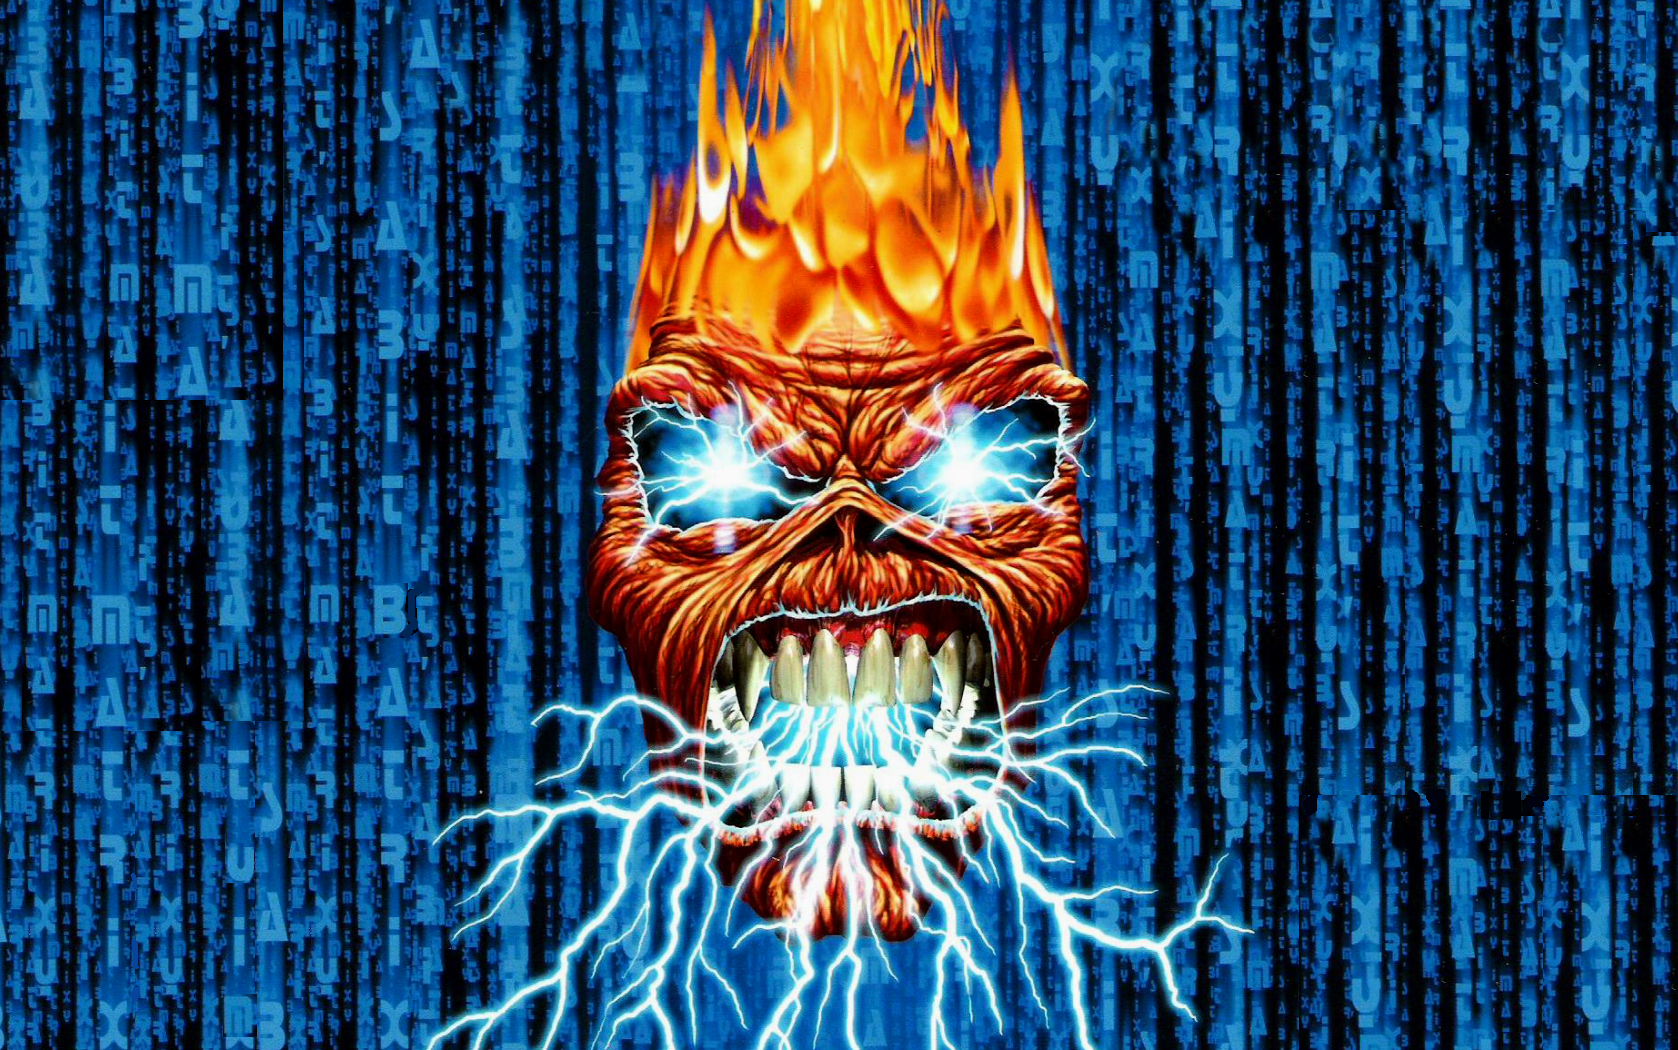 iron maiden wallpapers covers - photo #6